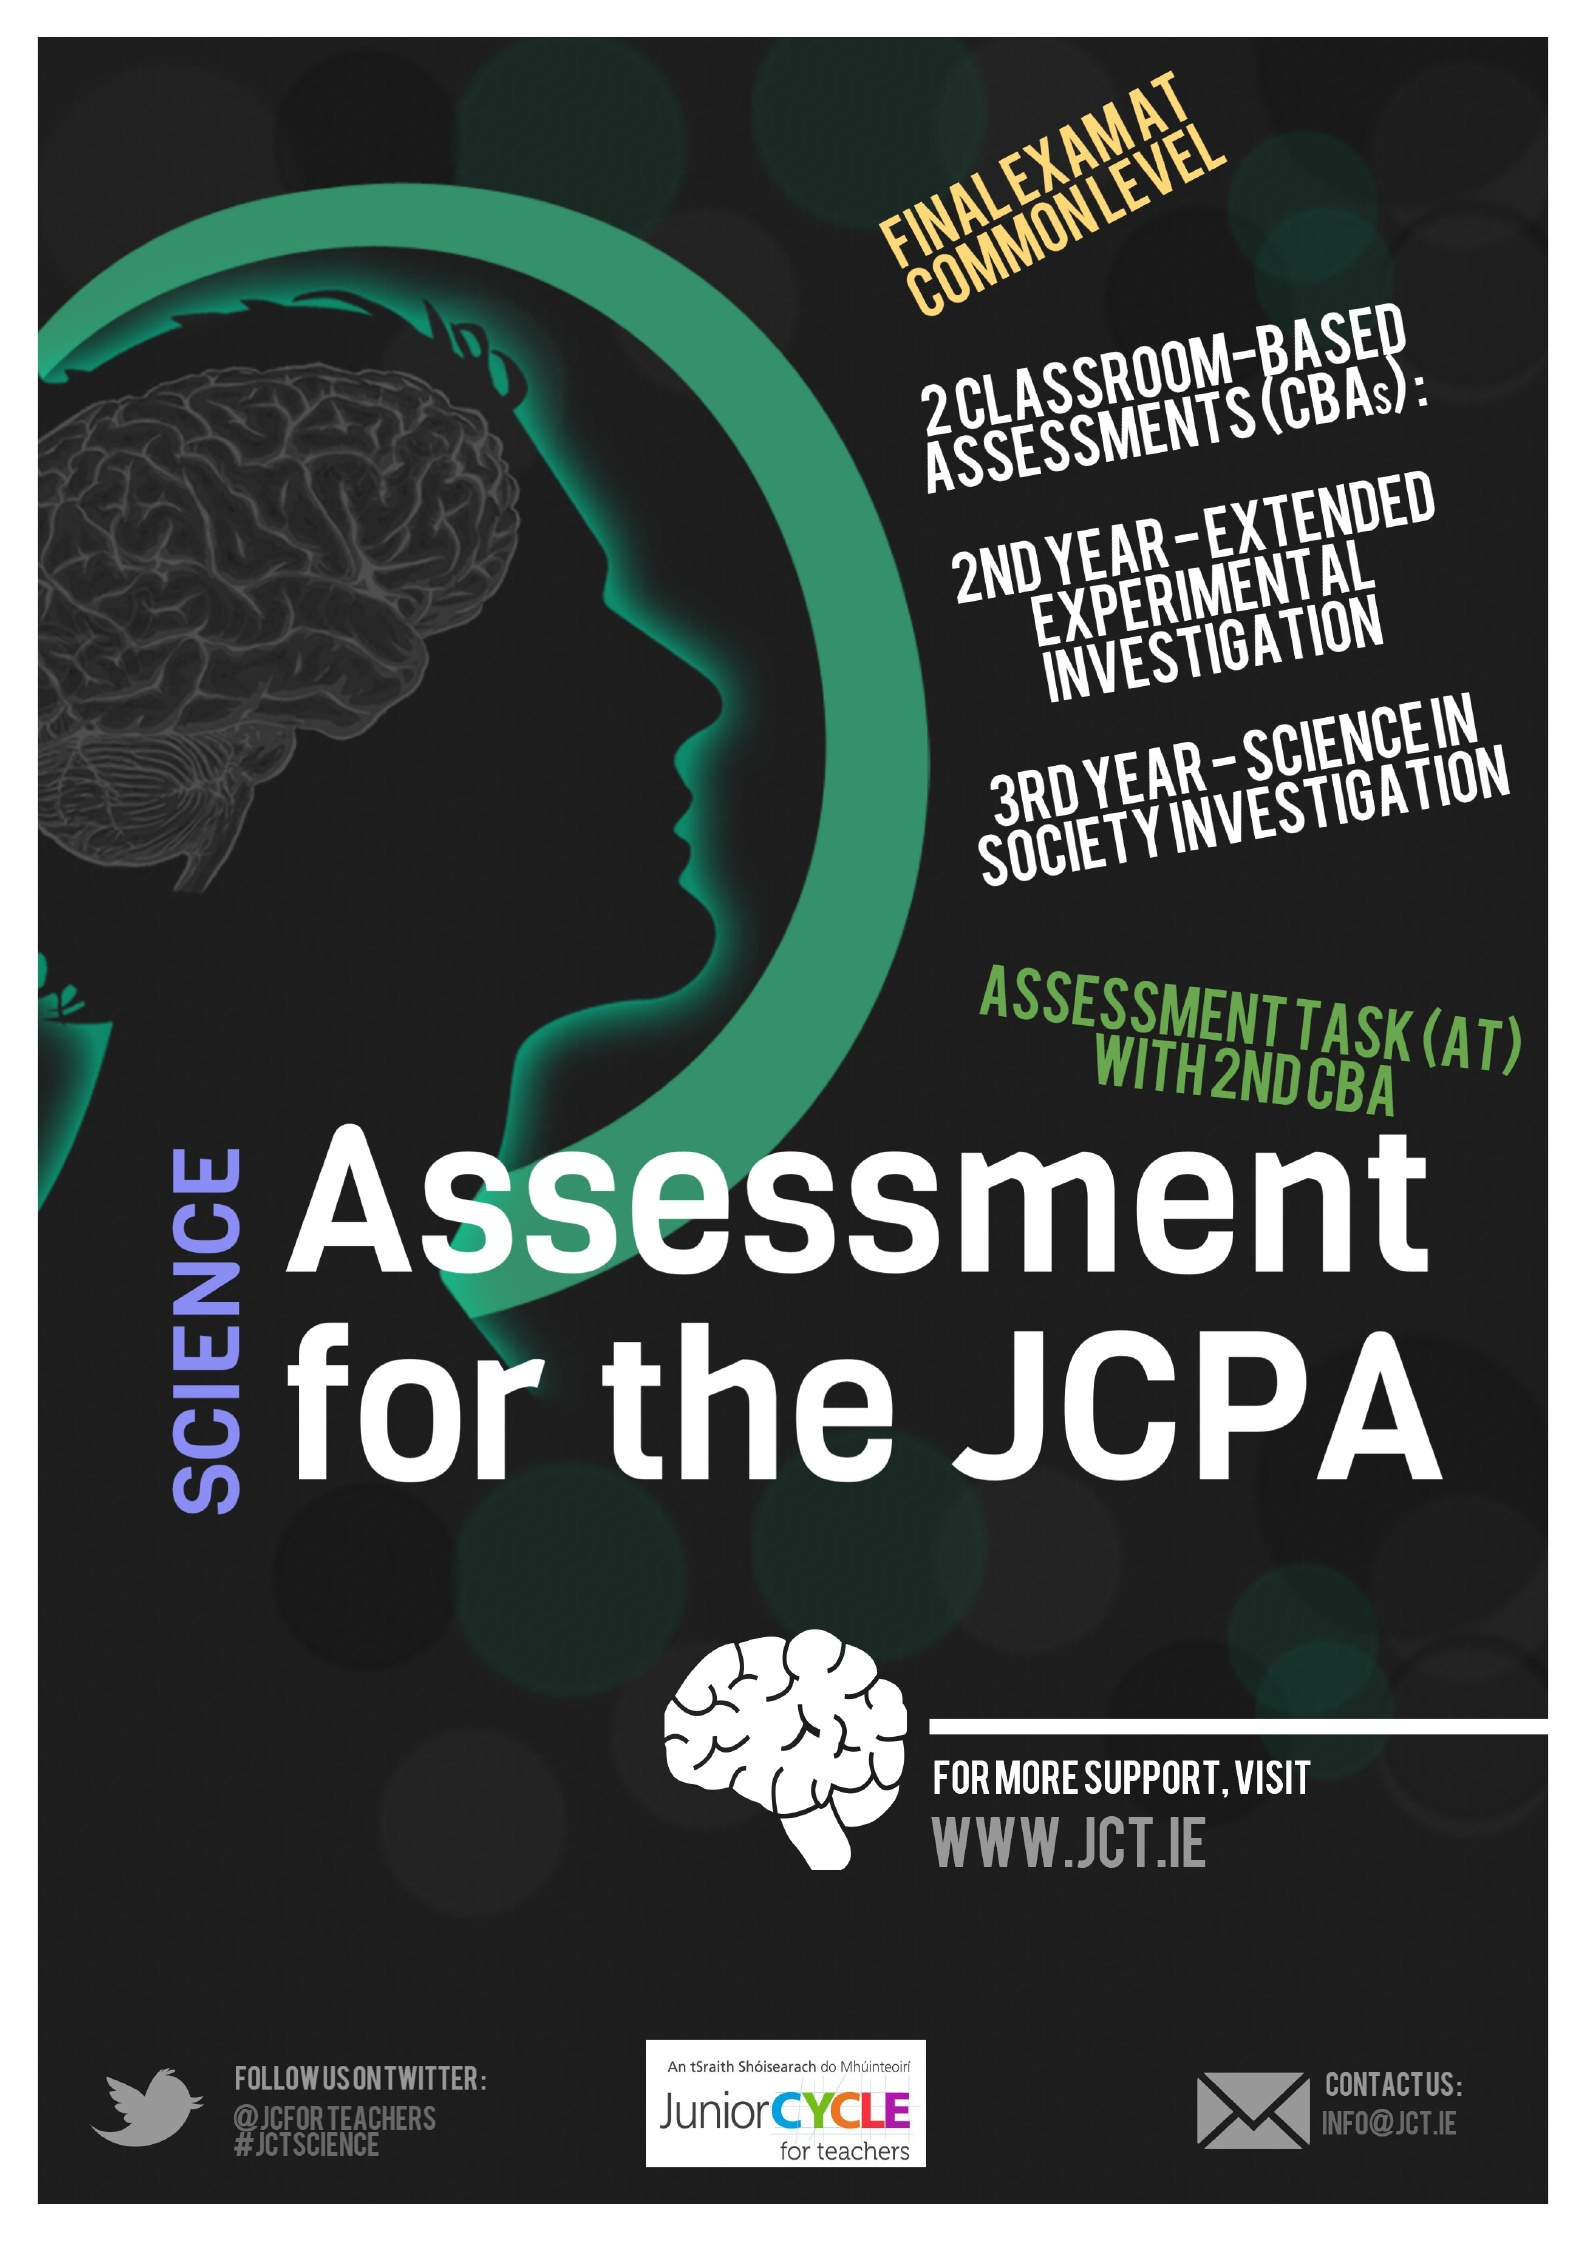 Assessment of Science for the JCPA - Infographic